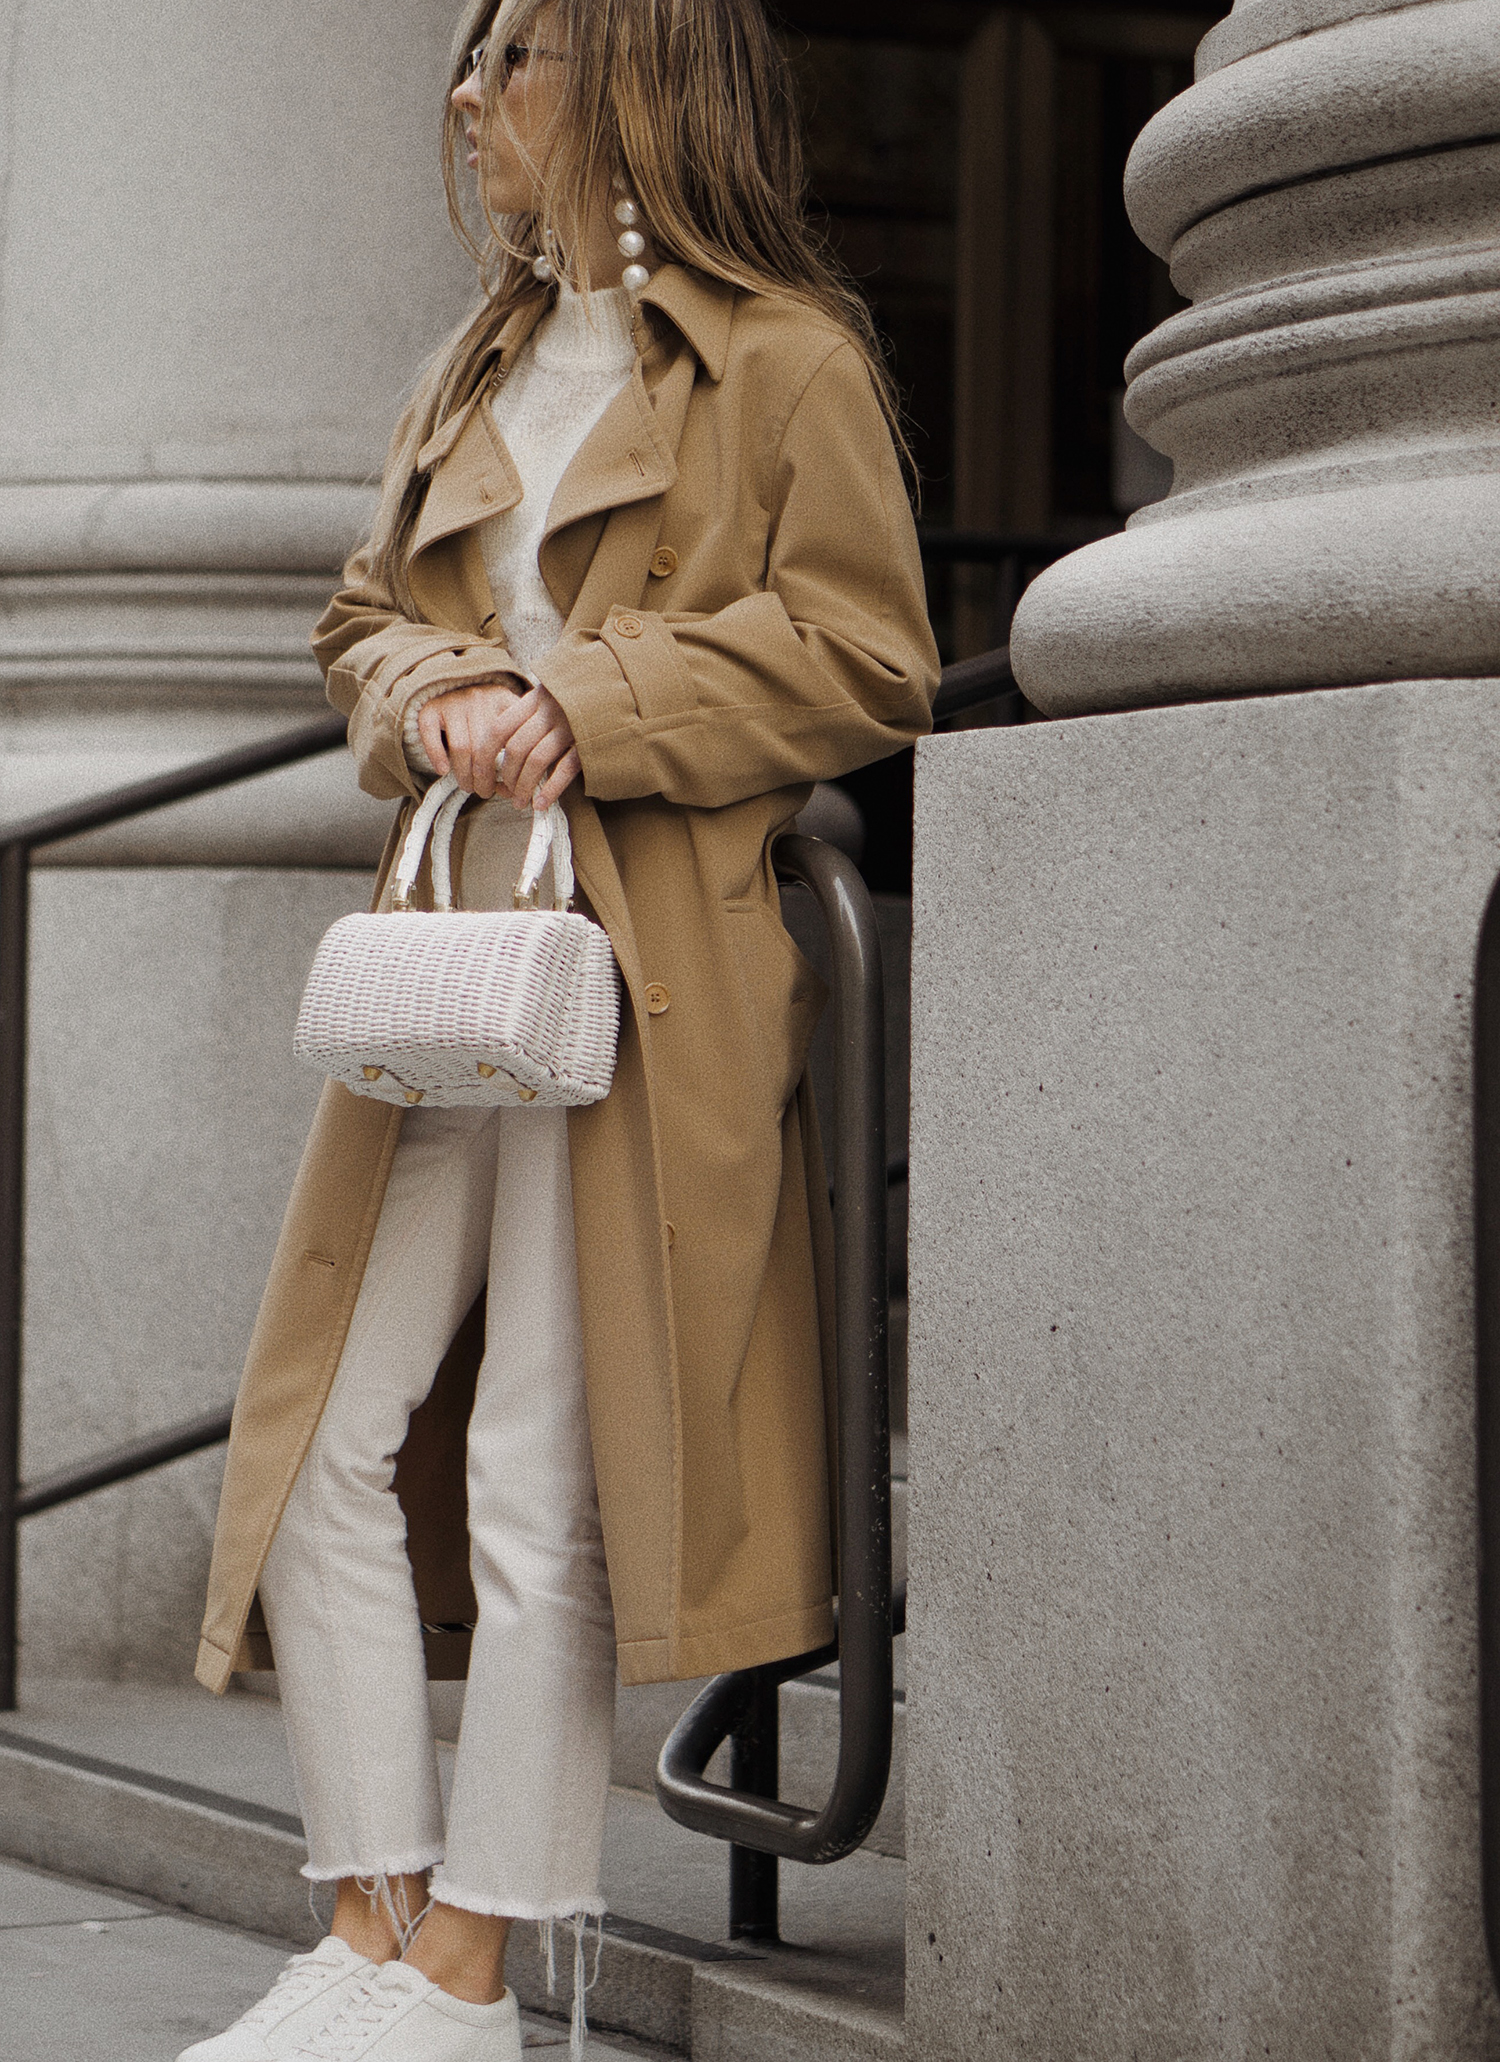 paulsmith_trenchcoat_vinceshoes_wicker_bag_white_outfit_freepeople_lenajuice_thewhiteocean_13